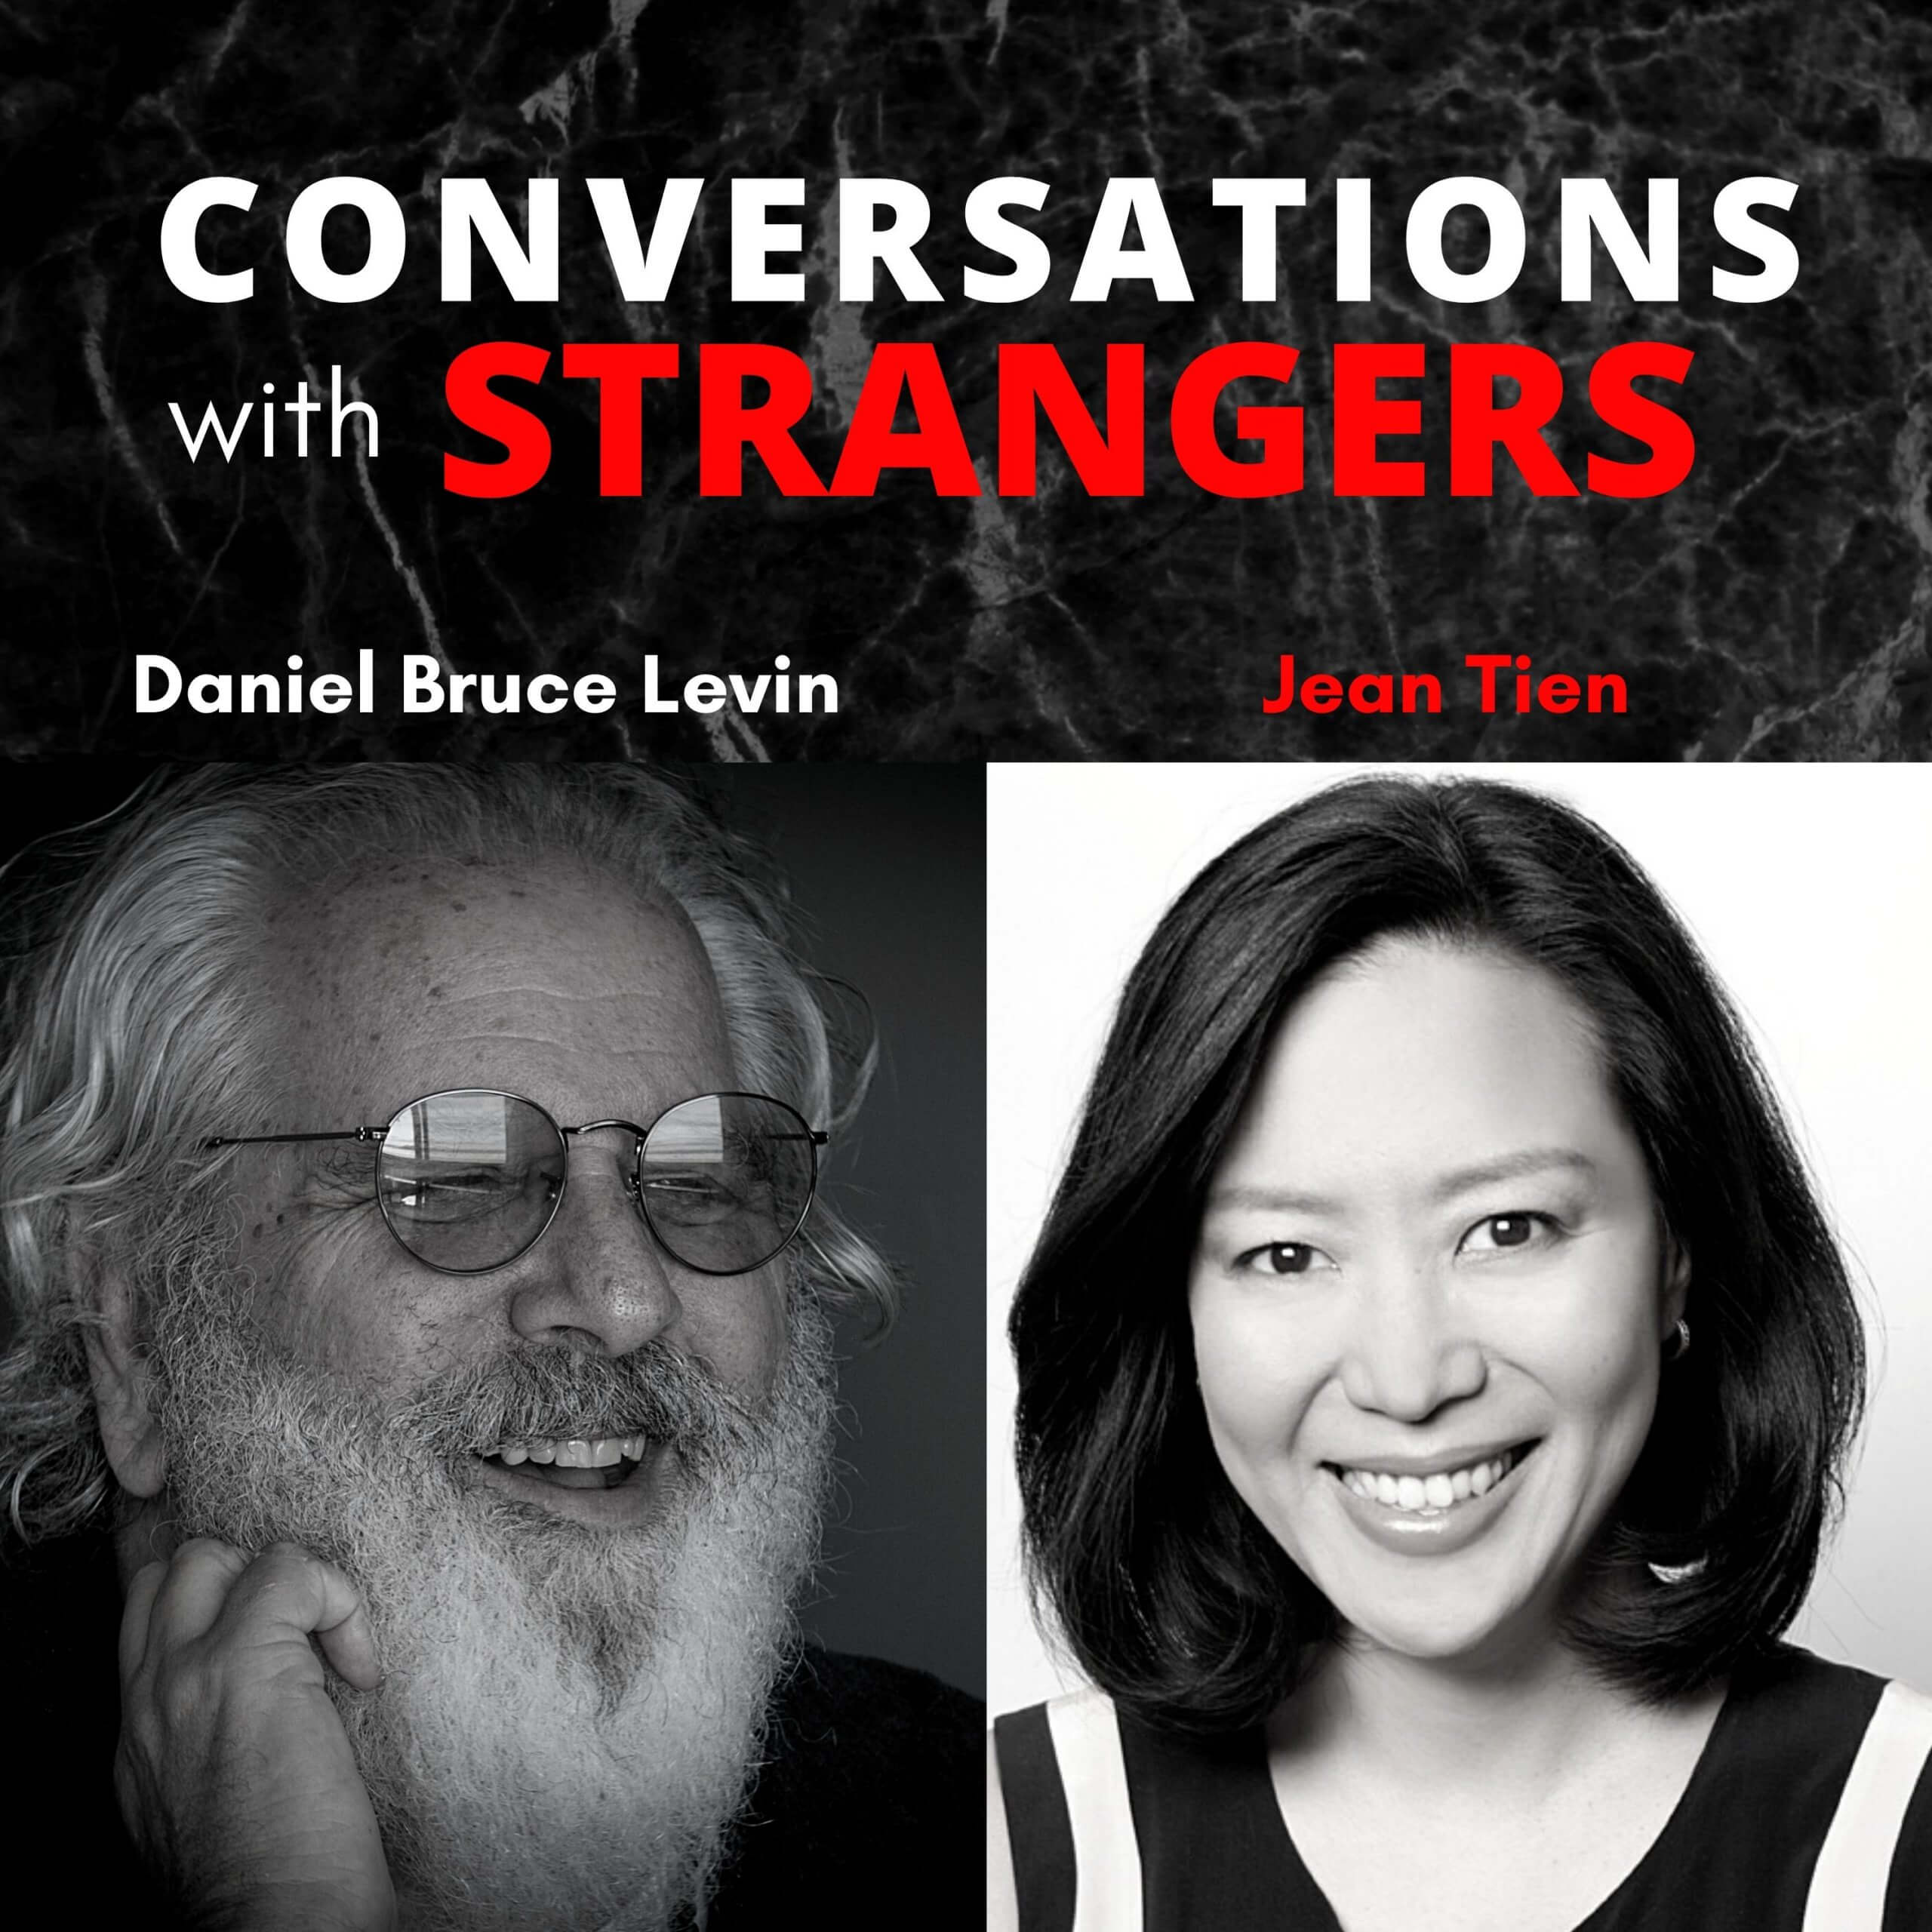 Conversations with Strangers feat. Jean Tien